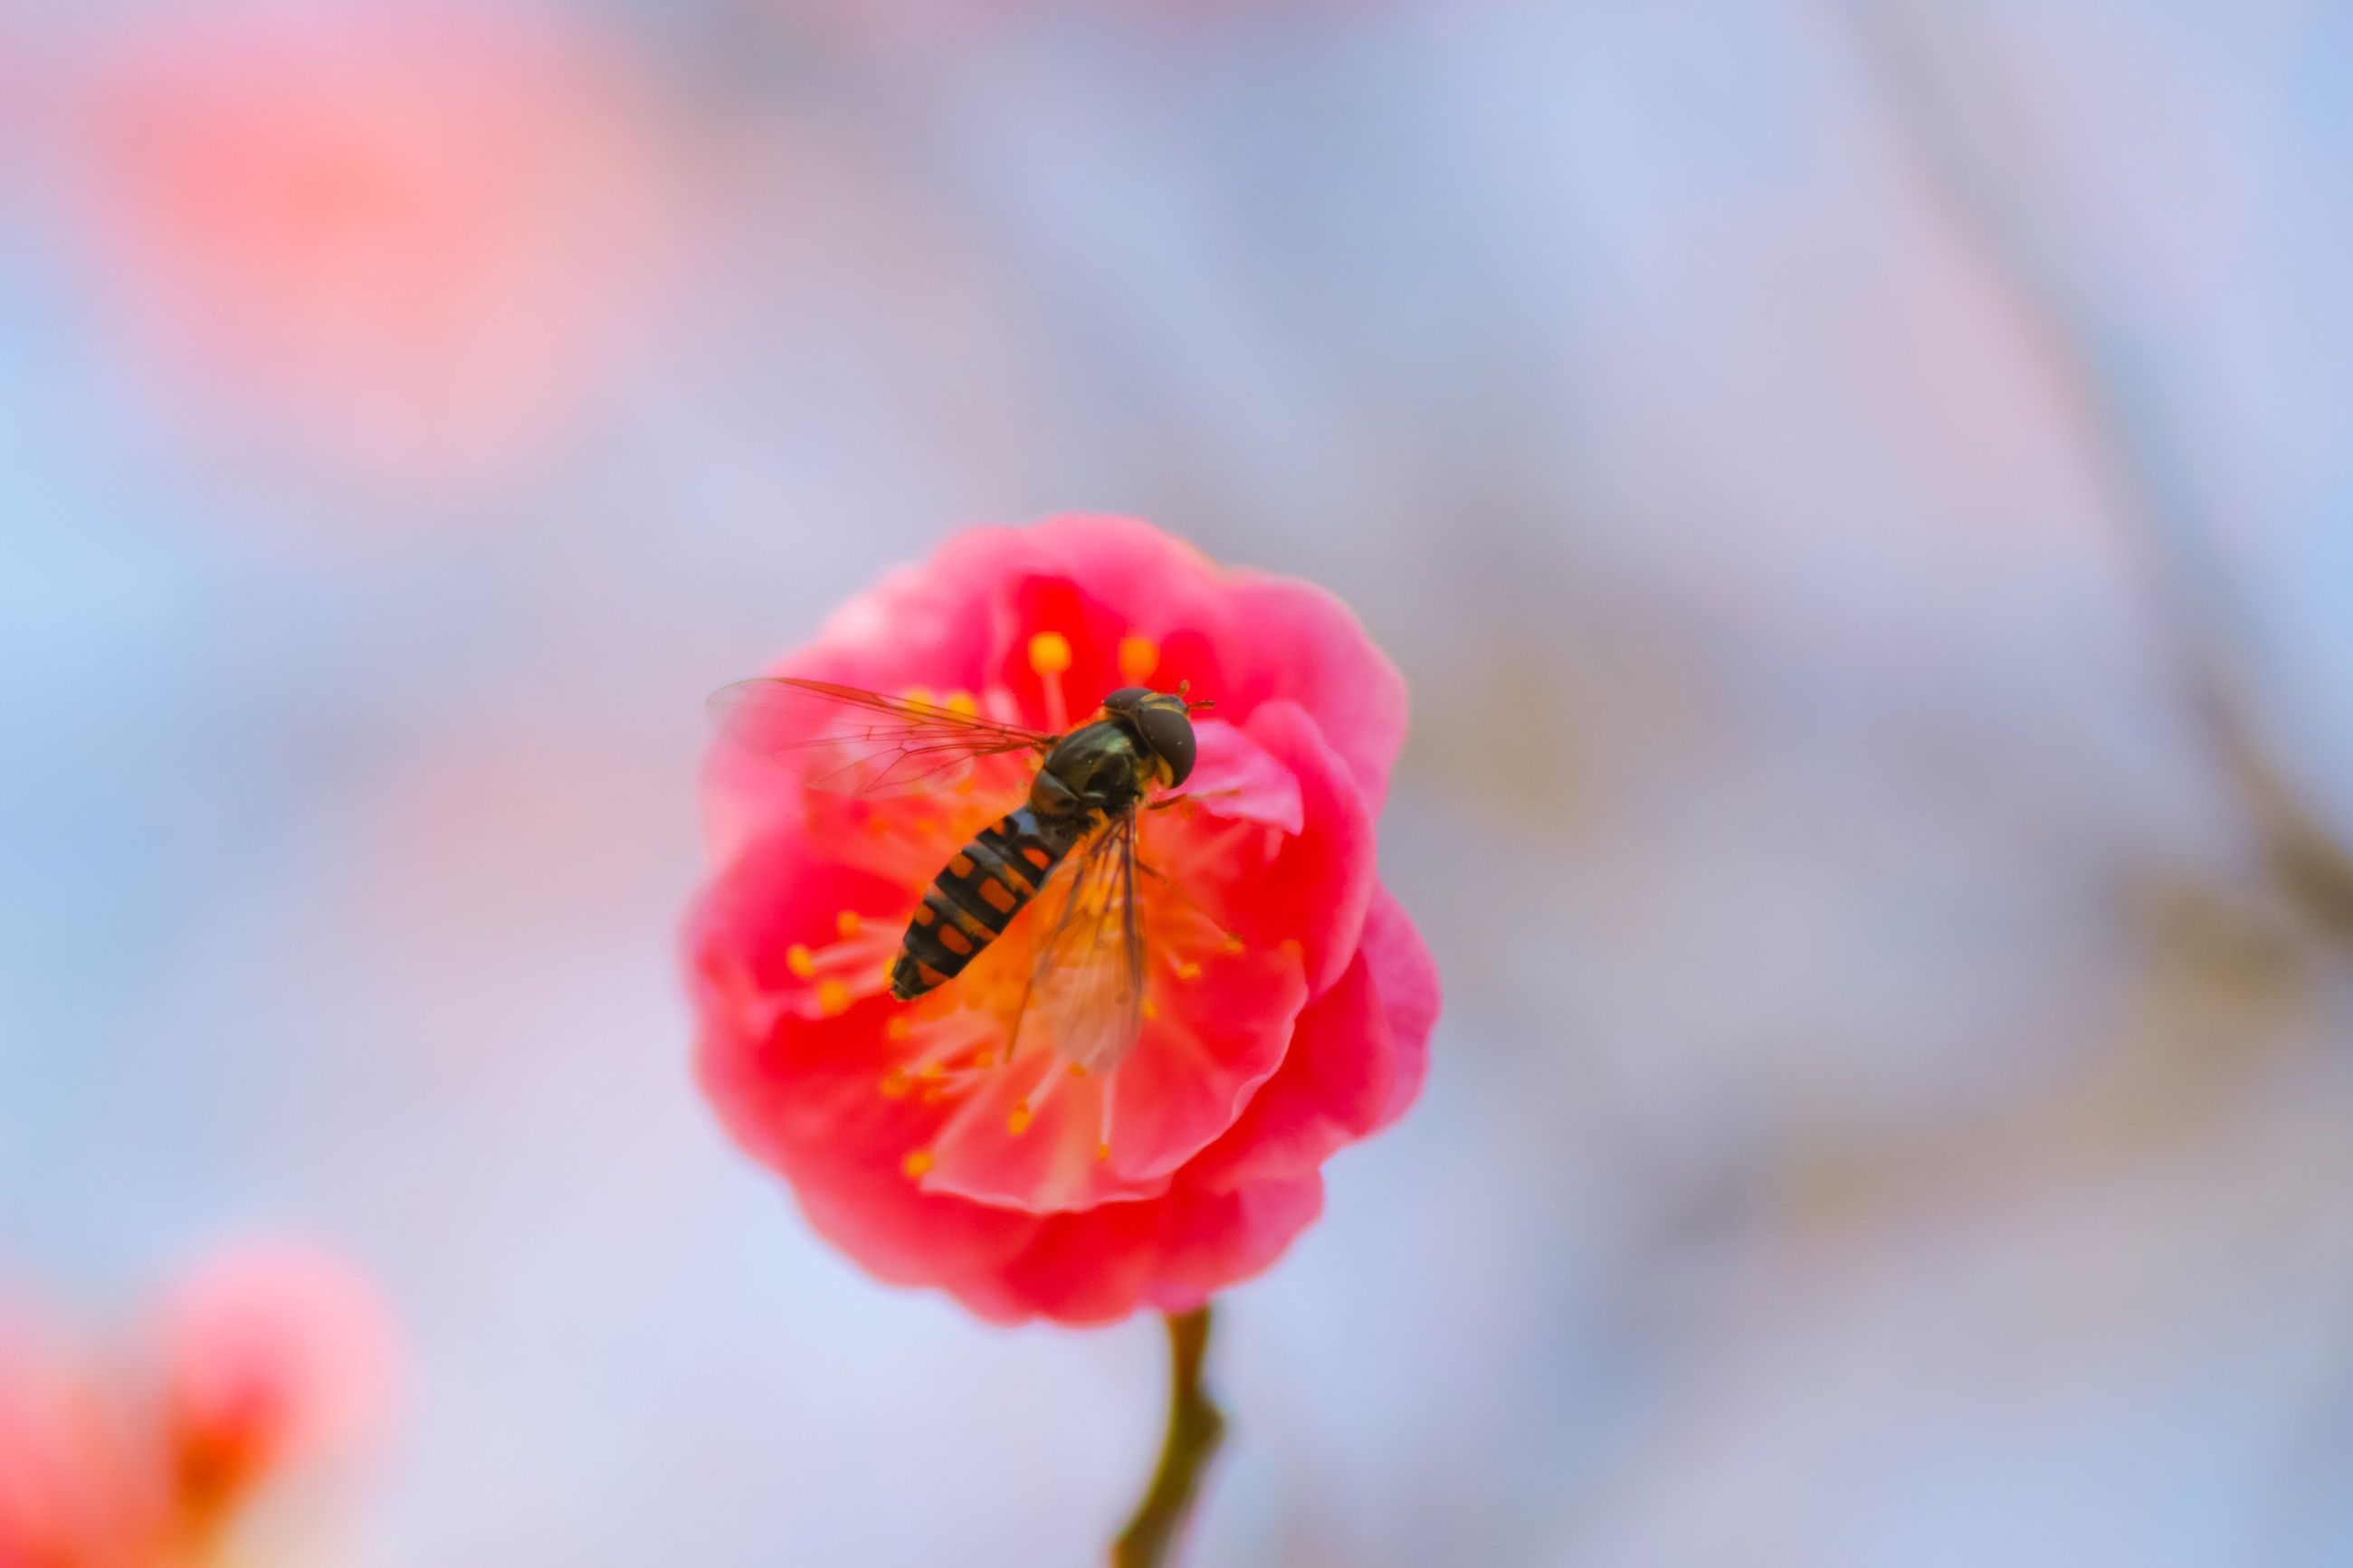 flower, nature, fragility, freshness, beauty in nature, growth, petal, animal themes, one animal, insect, animals in the wild, close-up, flower head, no people, day, plant, animal wildlife, pollen, outdoors, pollination, buzzing